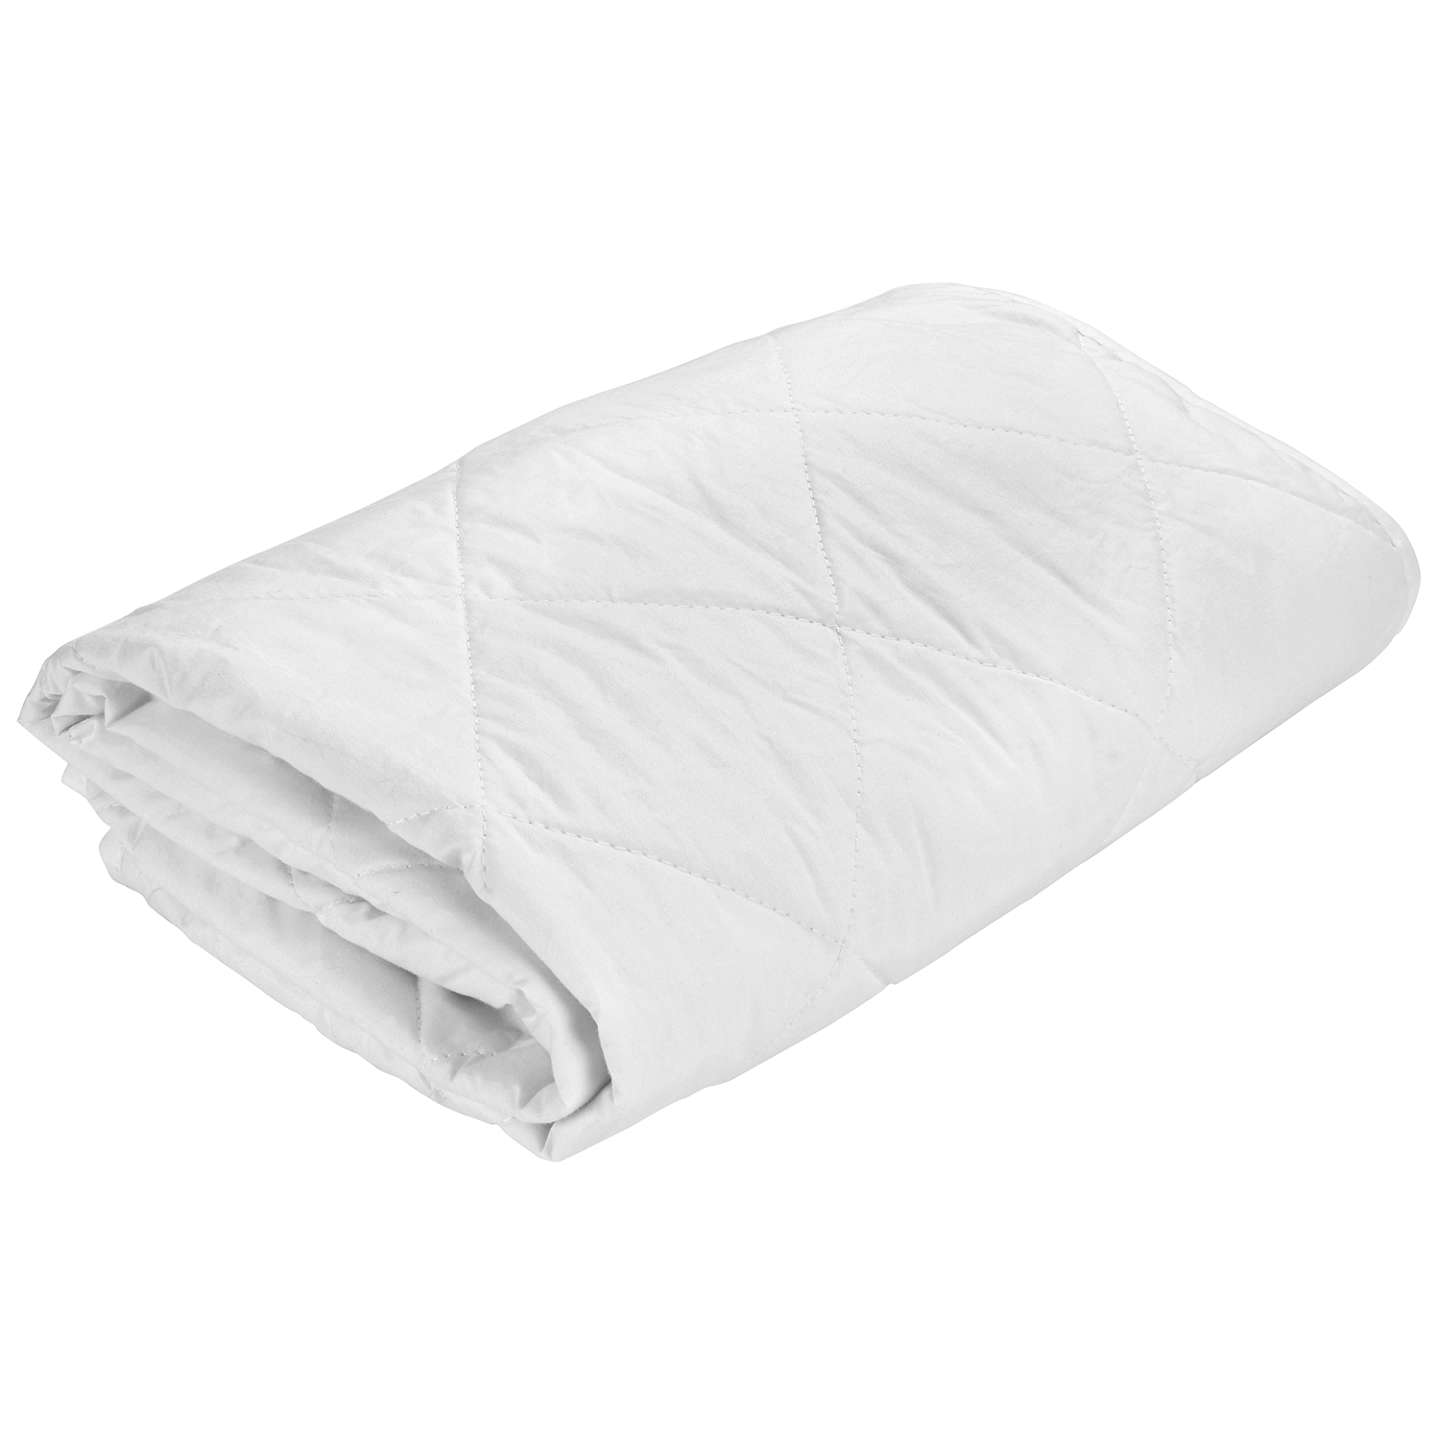 home cashmere wool shop wollbetten swissmade topper direct mattress cover merino kashmirii and accessories